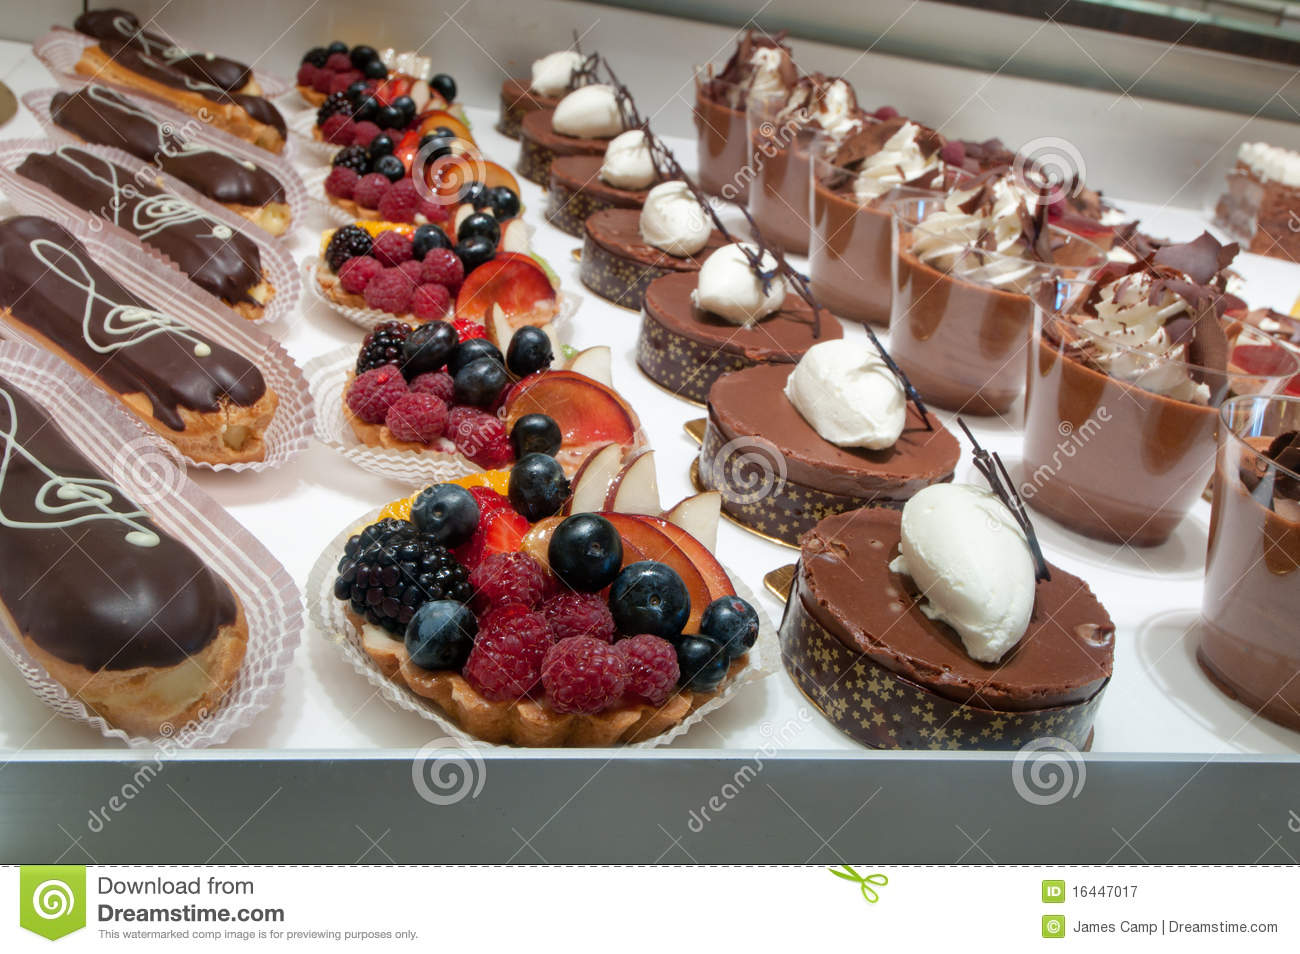 Sweet Treats At A Bakery Stock Image Image Of Chocolate